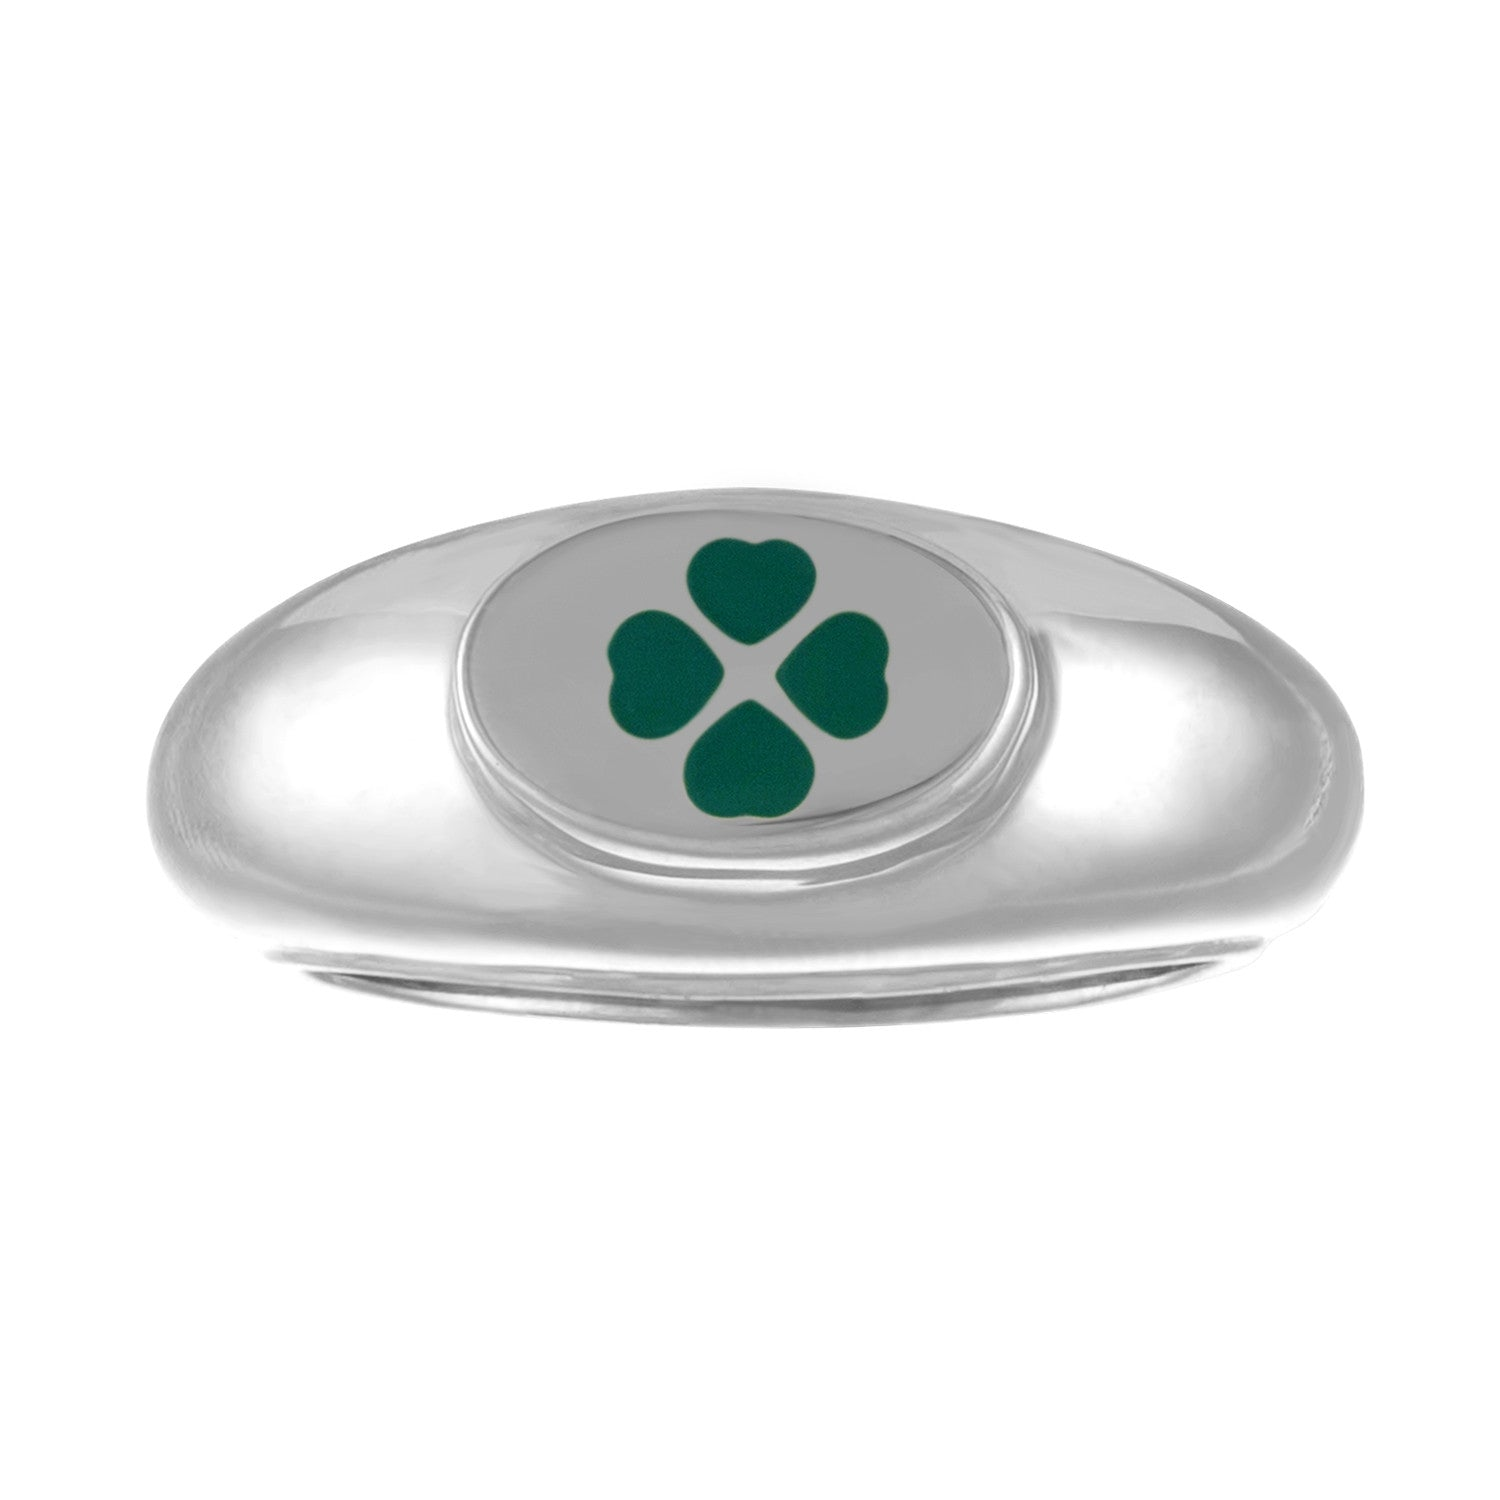 silver signet ring with green enamel four leaf clover design